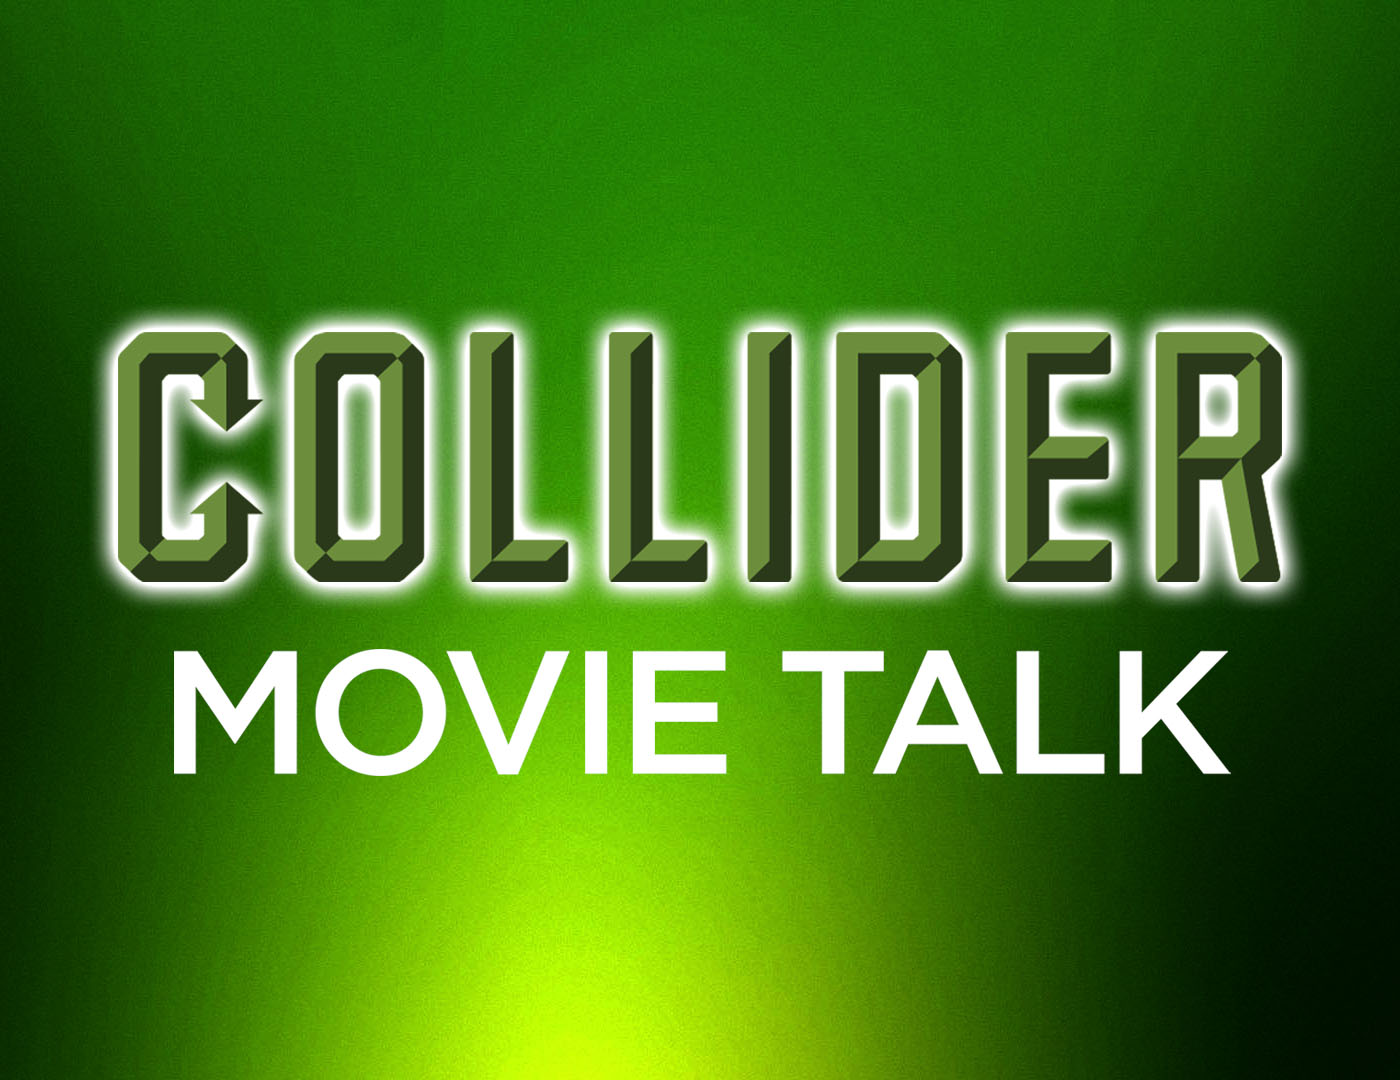 Collider Movie Talk - Michael B Jordan Joins Black Panther Movie